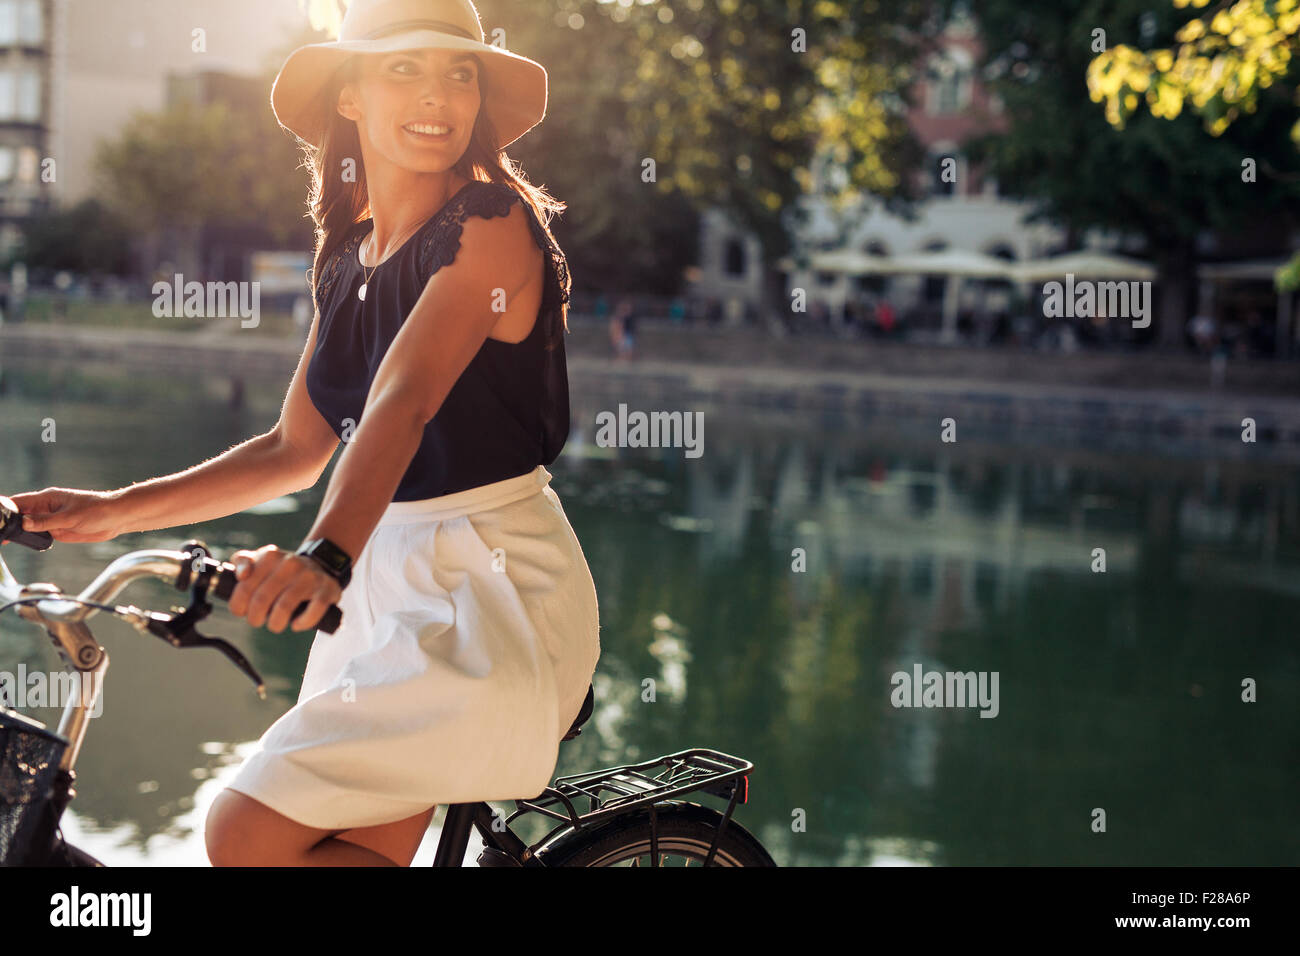 Portrait of happy young female cycling by a pond looking away smiling. Woman wearing a hat on a summer day riding - Stock Image